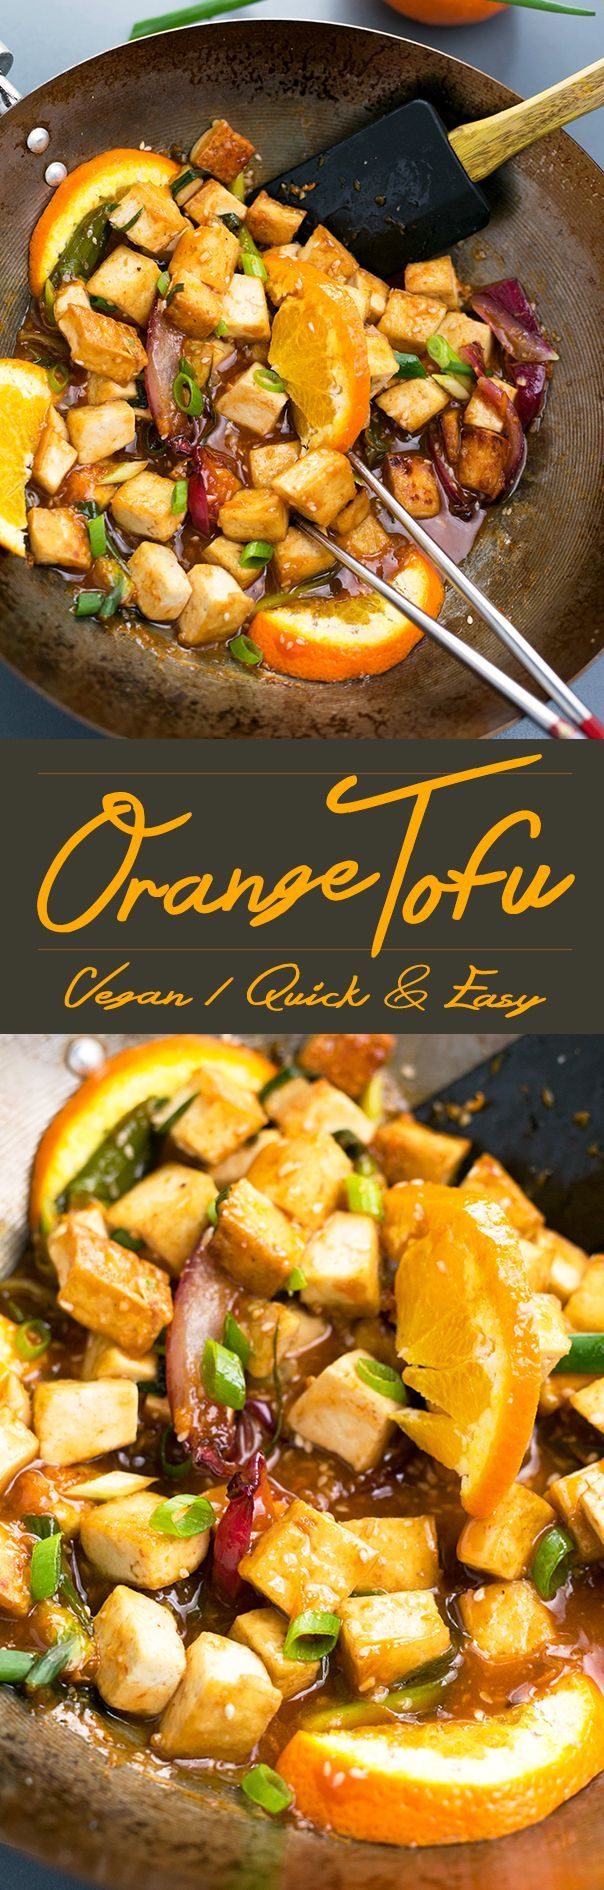 Asian Pan-Fried Orange Tofu recipe made with tofu, orange juice & zest, onions, sesame seeds, and more. Delicious! I'd half the siracha.